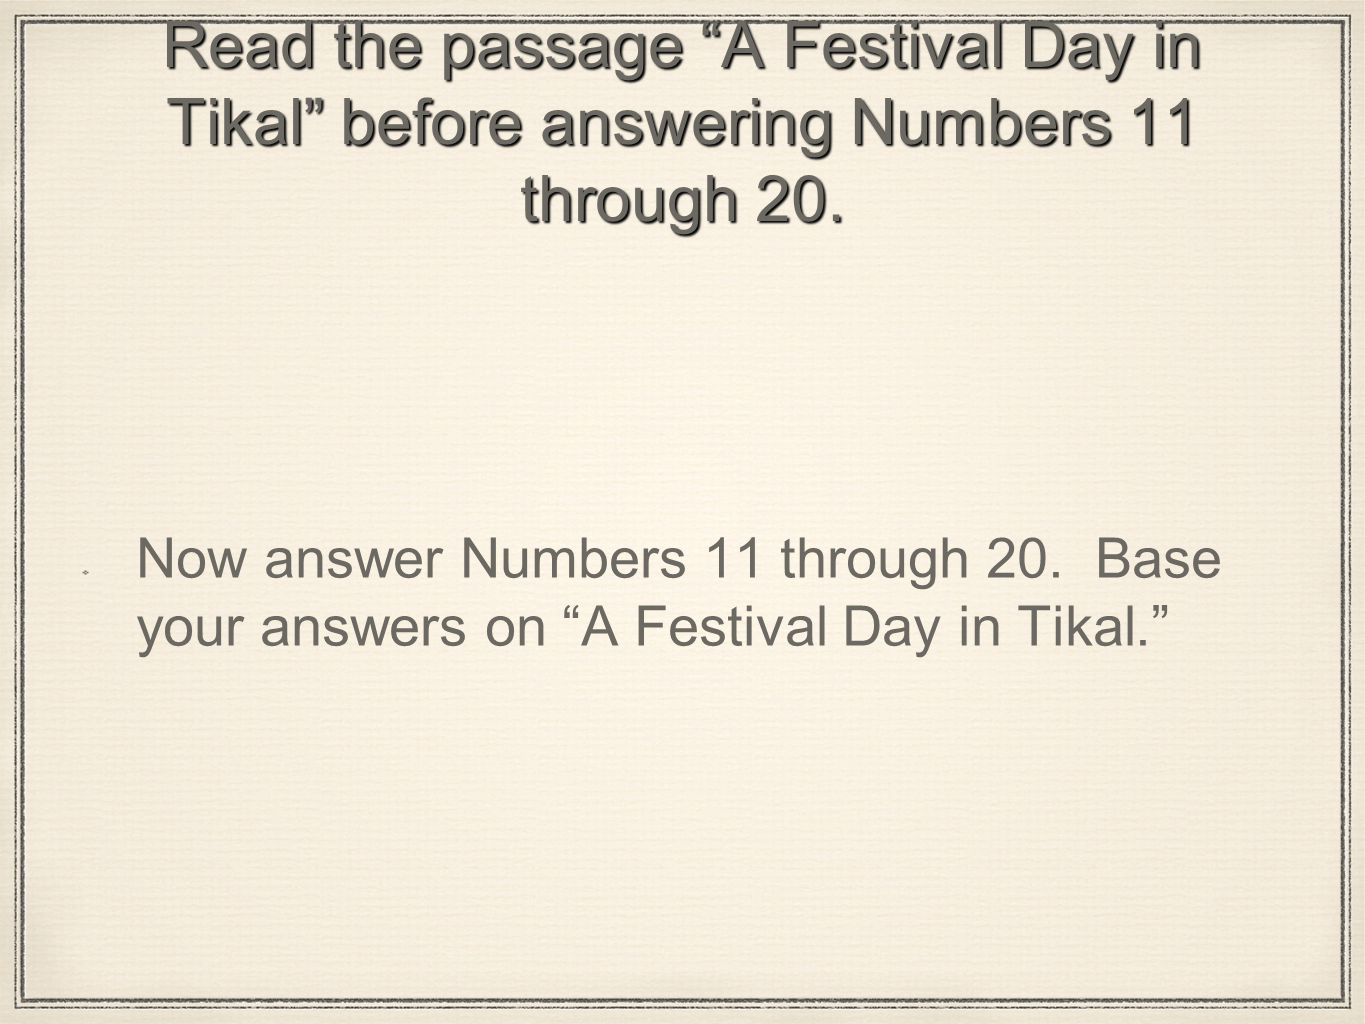 Read the passage A Festival Day in Tikal before answering Numbers 11 through 20.